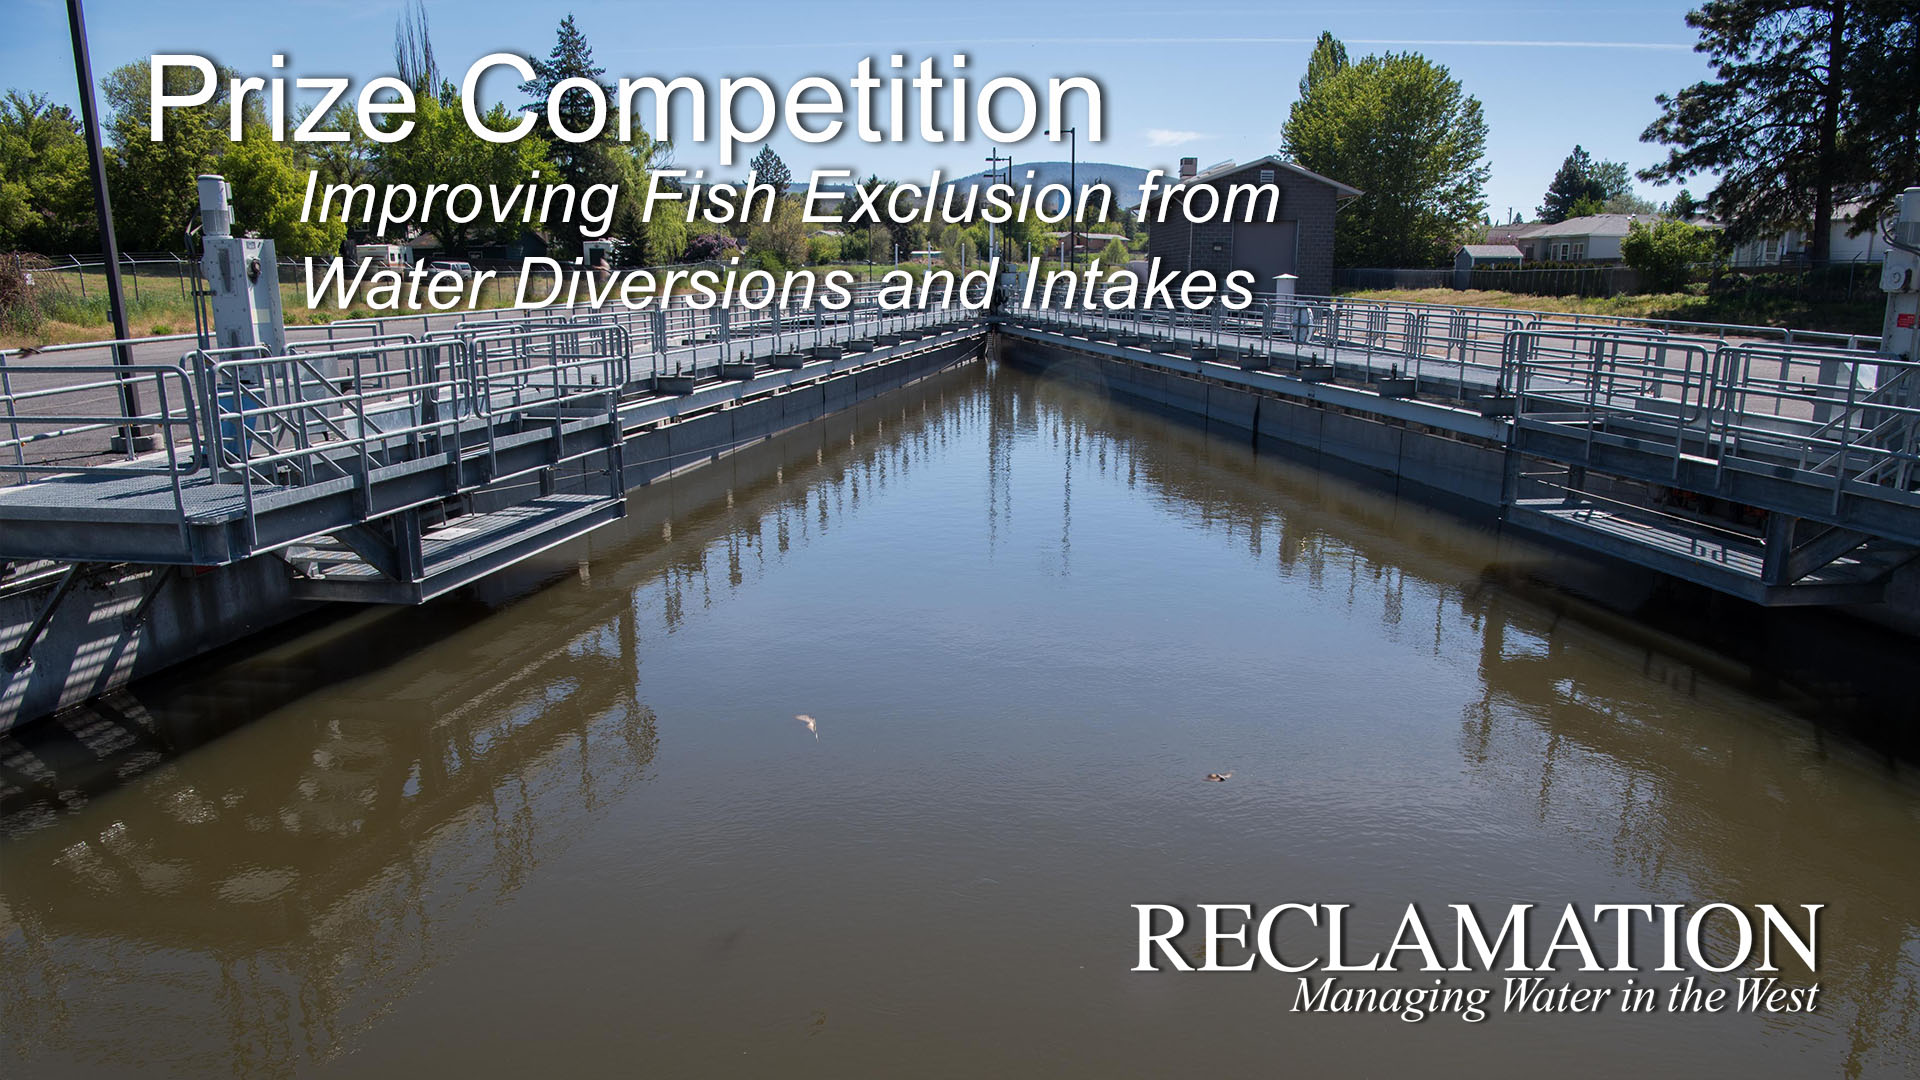 Fish Exclusion Prize Competition